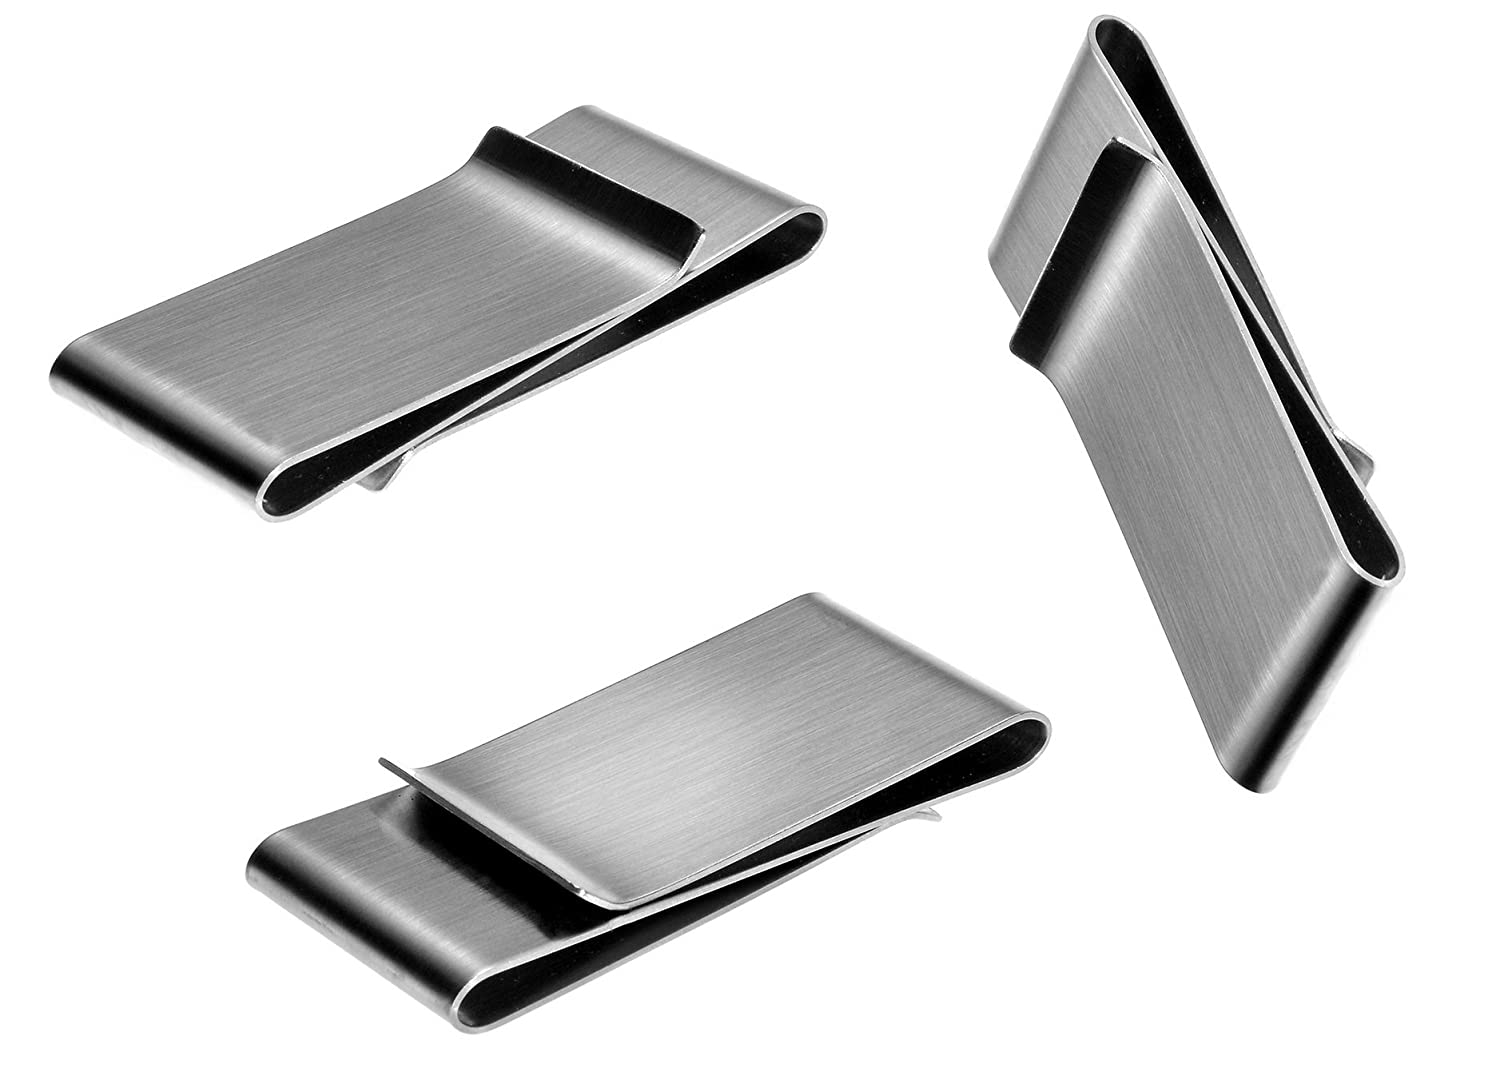 Money Clips 20 Pack, Stainless Steel Blanks for Engraving or Personalize, Bulk Wholesale Bulk Wholesale (Double Clip)